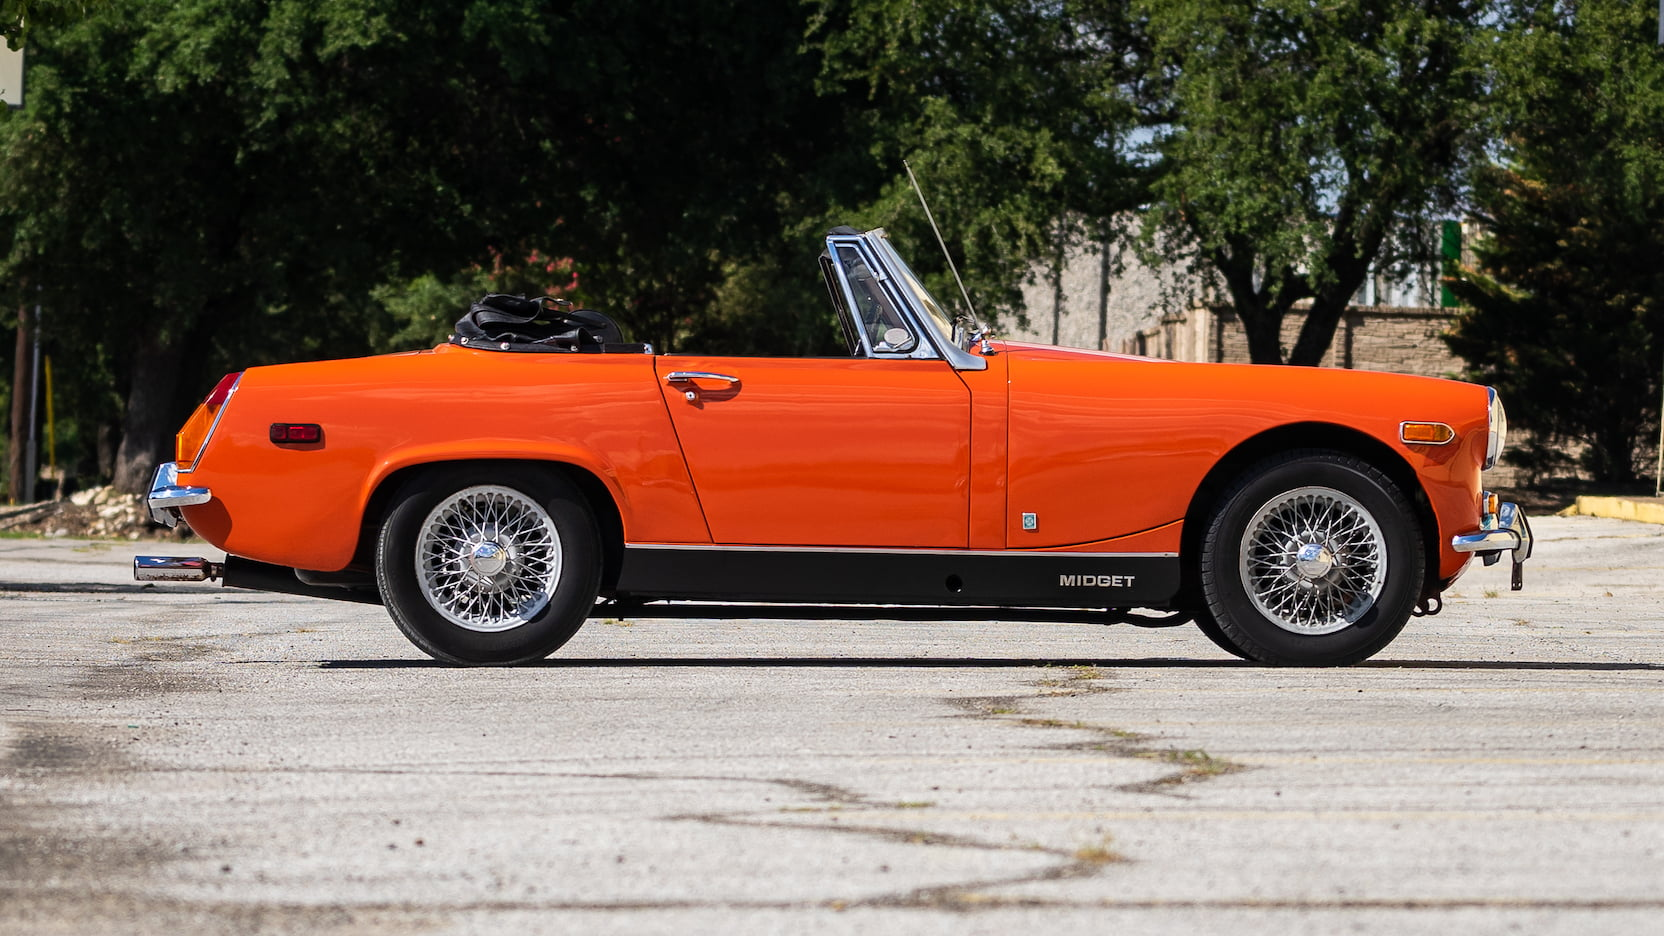 1971 MG Midget profile